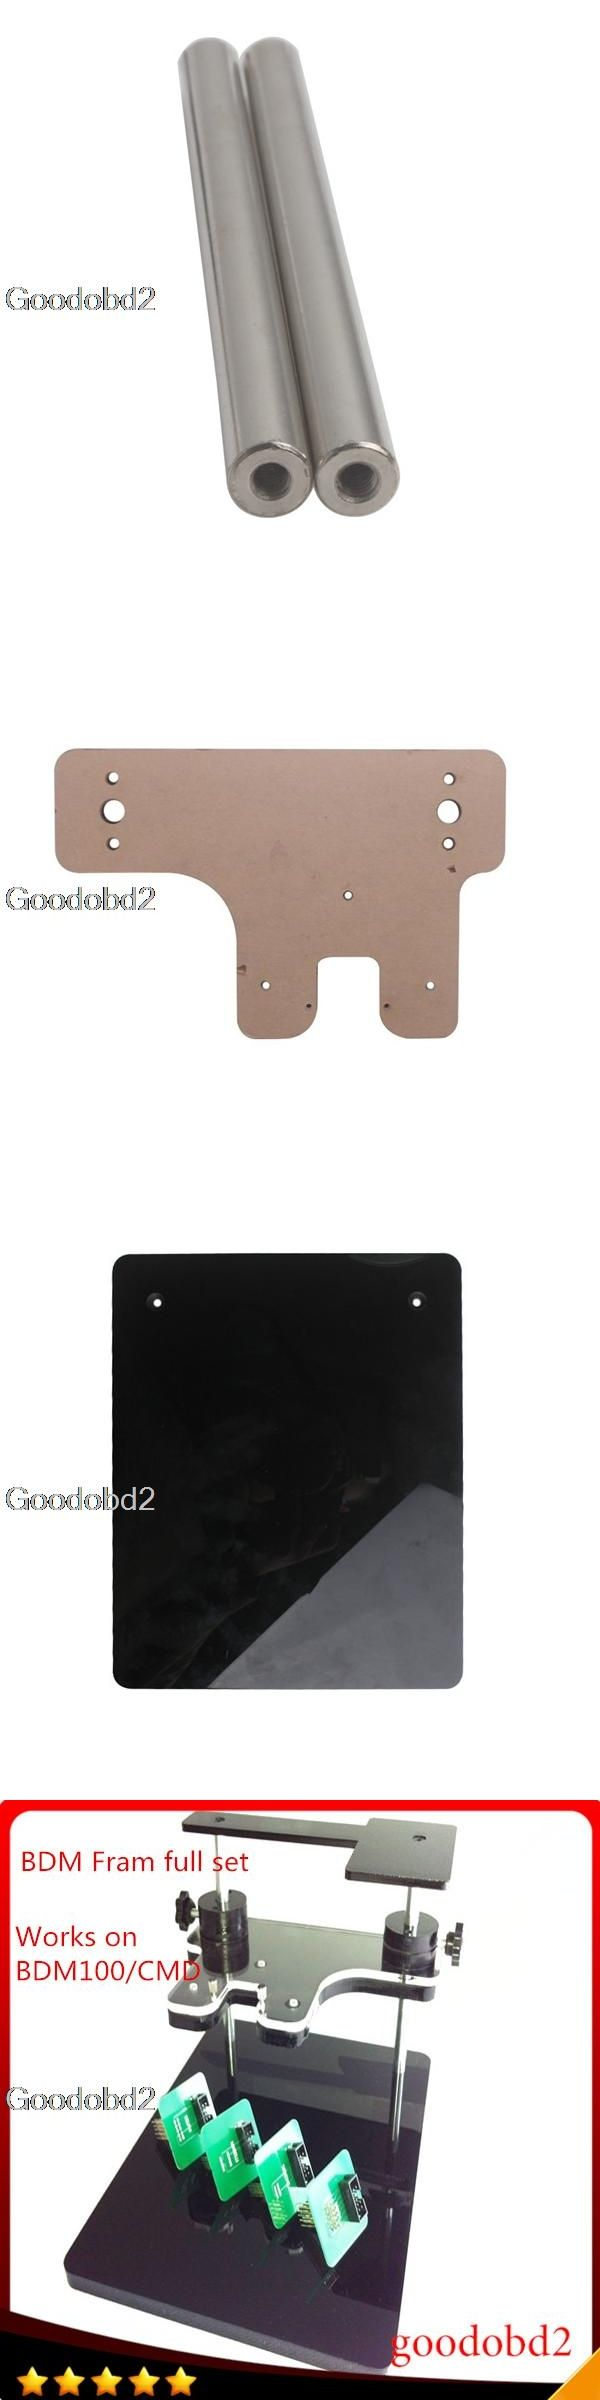 BDM Frame With Adapter Full Sets Works For BDM 100  Fits For FGTECH bdm100 for ktag k-tag ECU programmer tool fgtech galletto 4